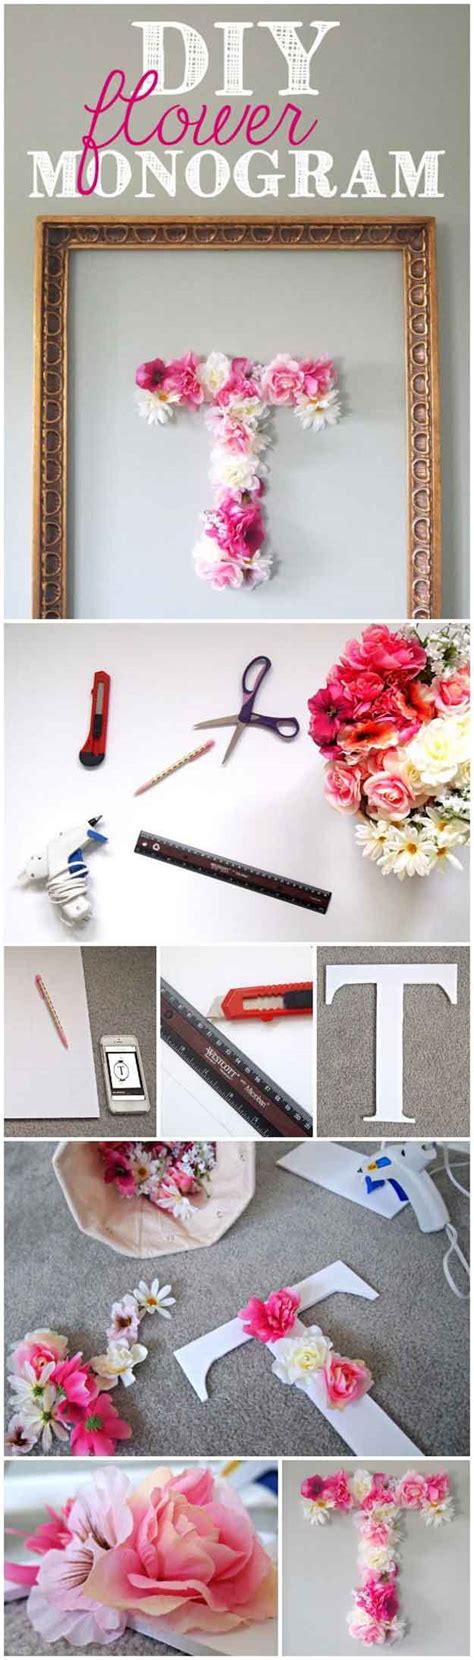 cool diy craft projects diy projects for bedroom diy ready